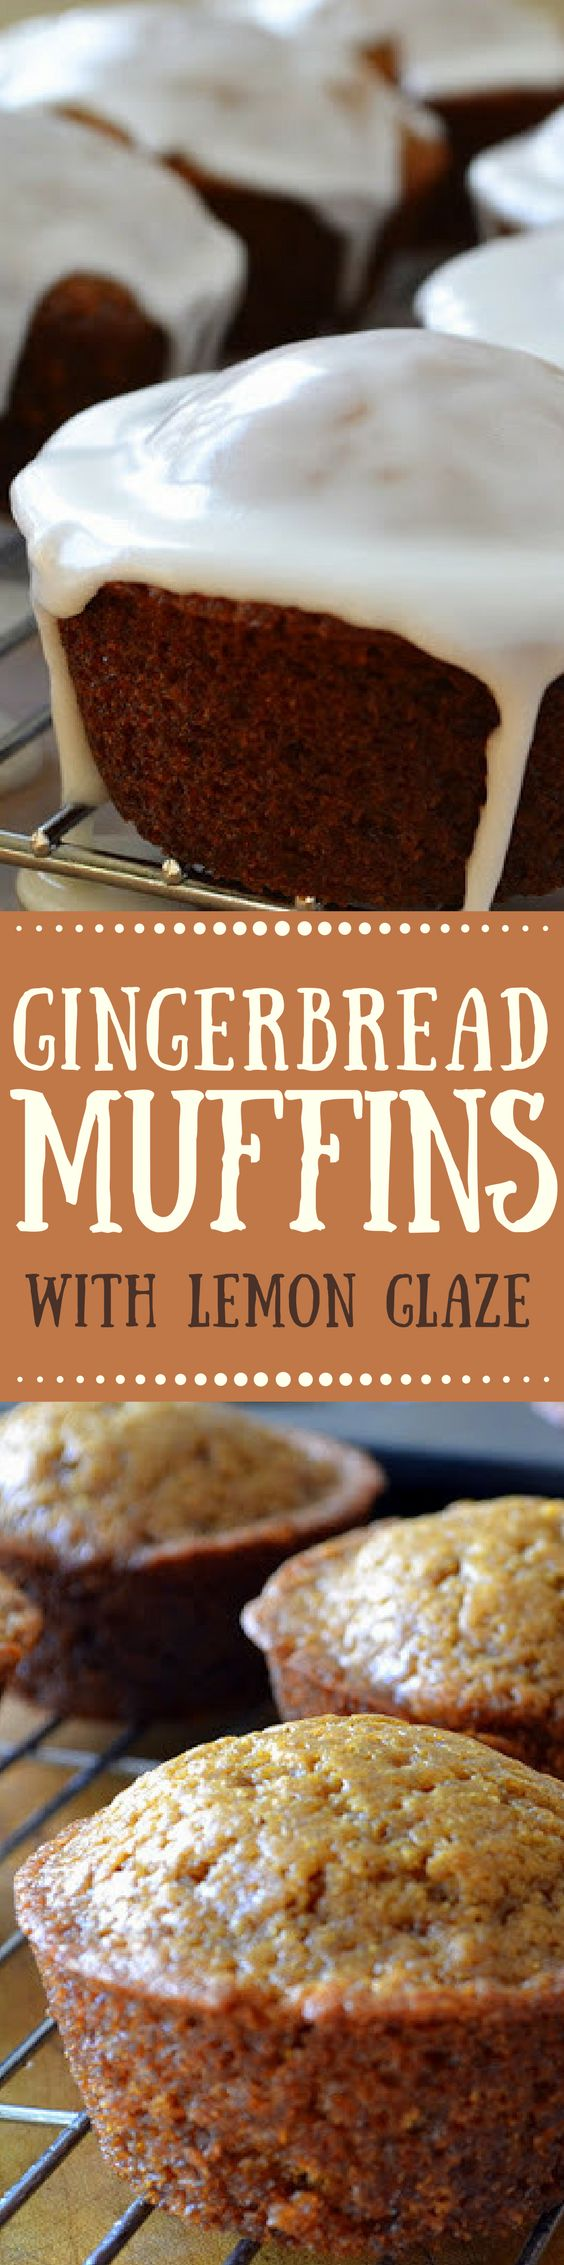 Gingerbread Muffins with Lemon Glaze ~ the perfect combination for a fall morning! ~ theviewfromgreatisland.com